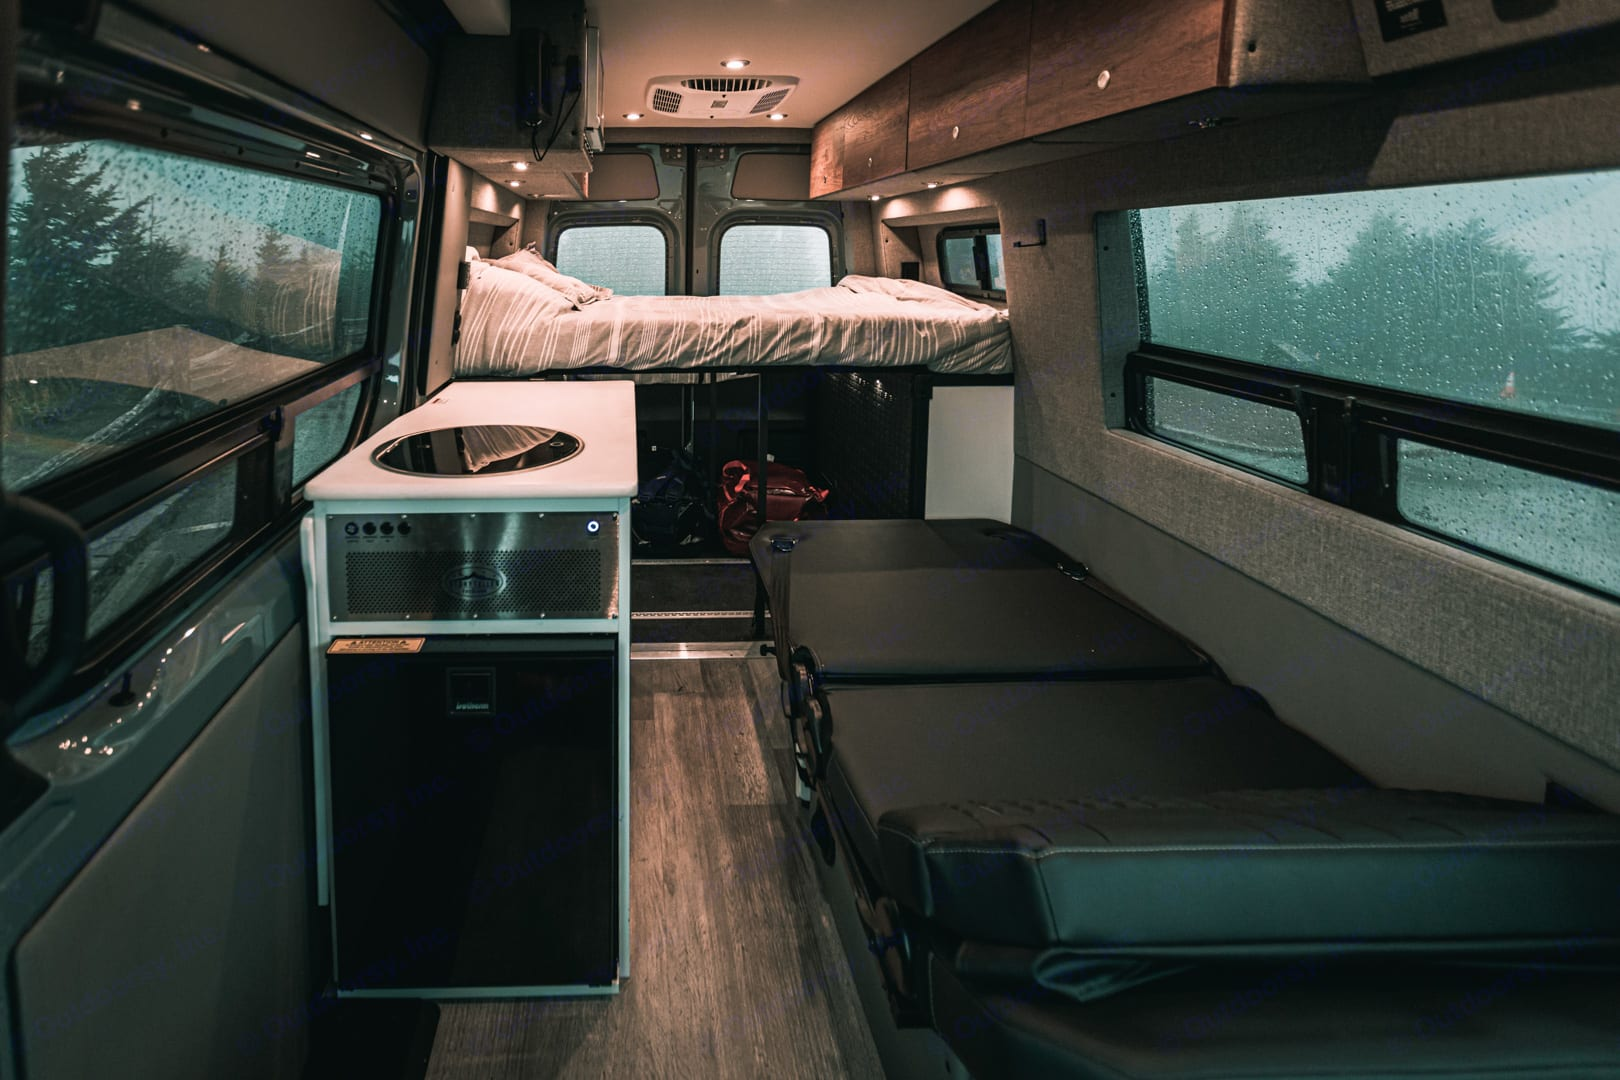 The back bench seat folds down into a bed.. Mercedes-Benz Storyteller Overland Stealth MODE 4x4 2021